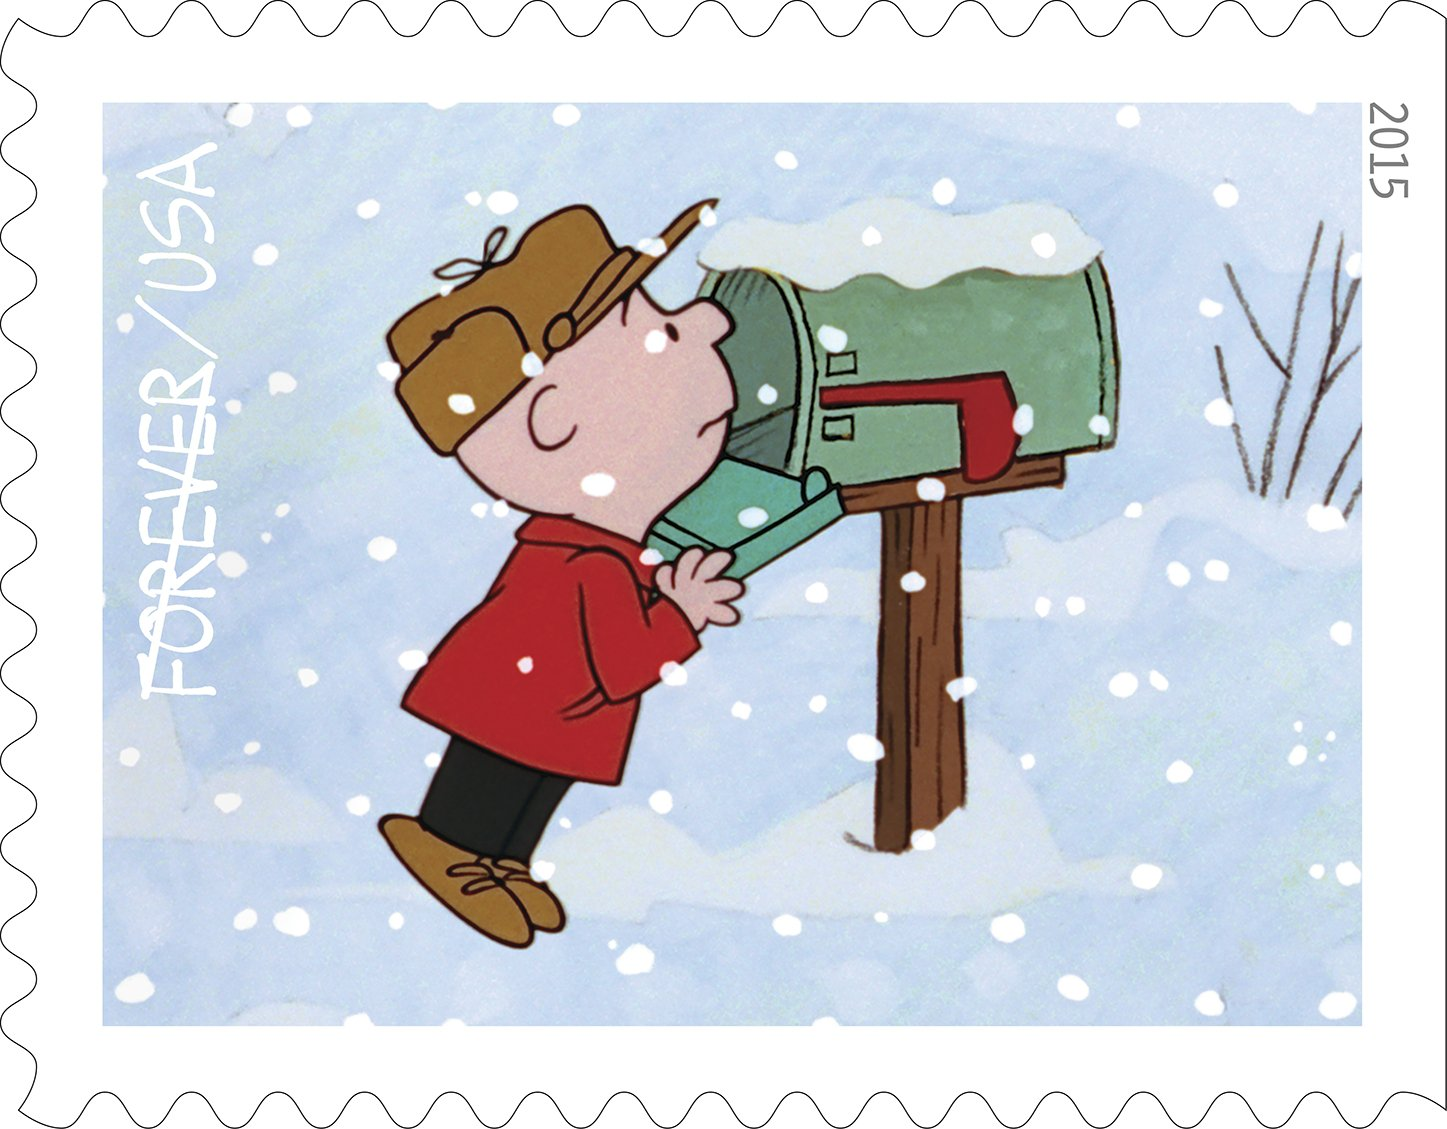 USPS to sell 'A Charlie Brown Christmas' stamps.